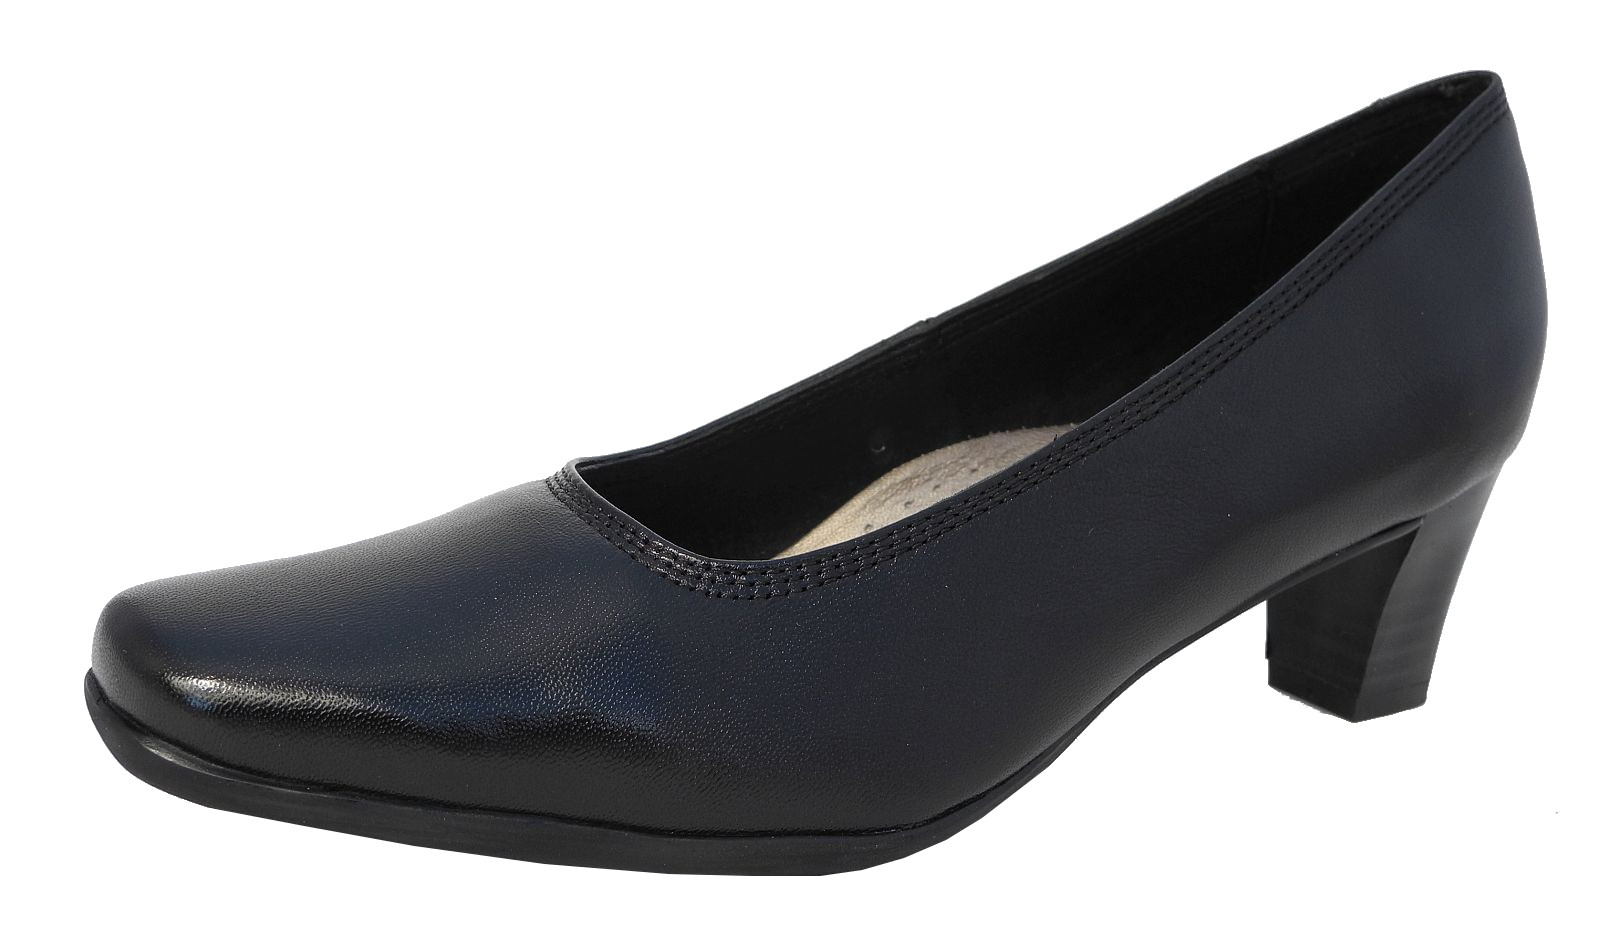 Womens Las Leather Lined Comfortable Black Low Heel Court Shoes Size 5 6 7